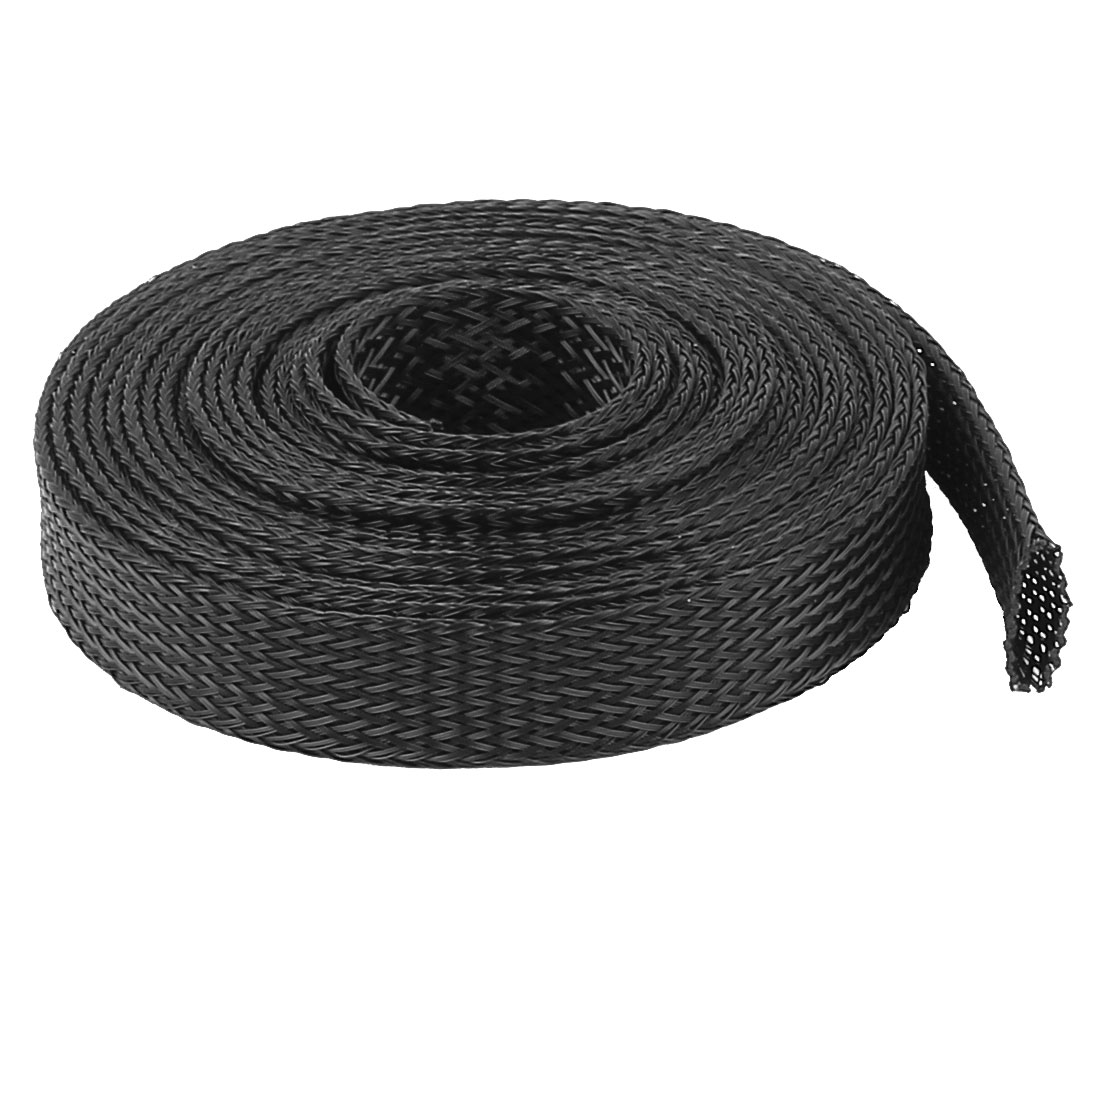 Uxcell Od 12Mm Pet Cable Wire Wrap Expandable Braided Sleeving .10m3m4.9m